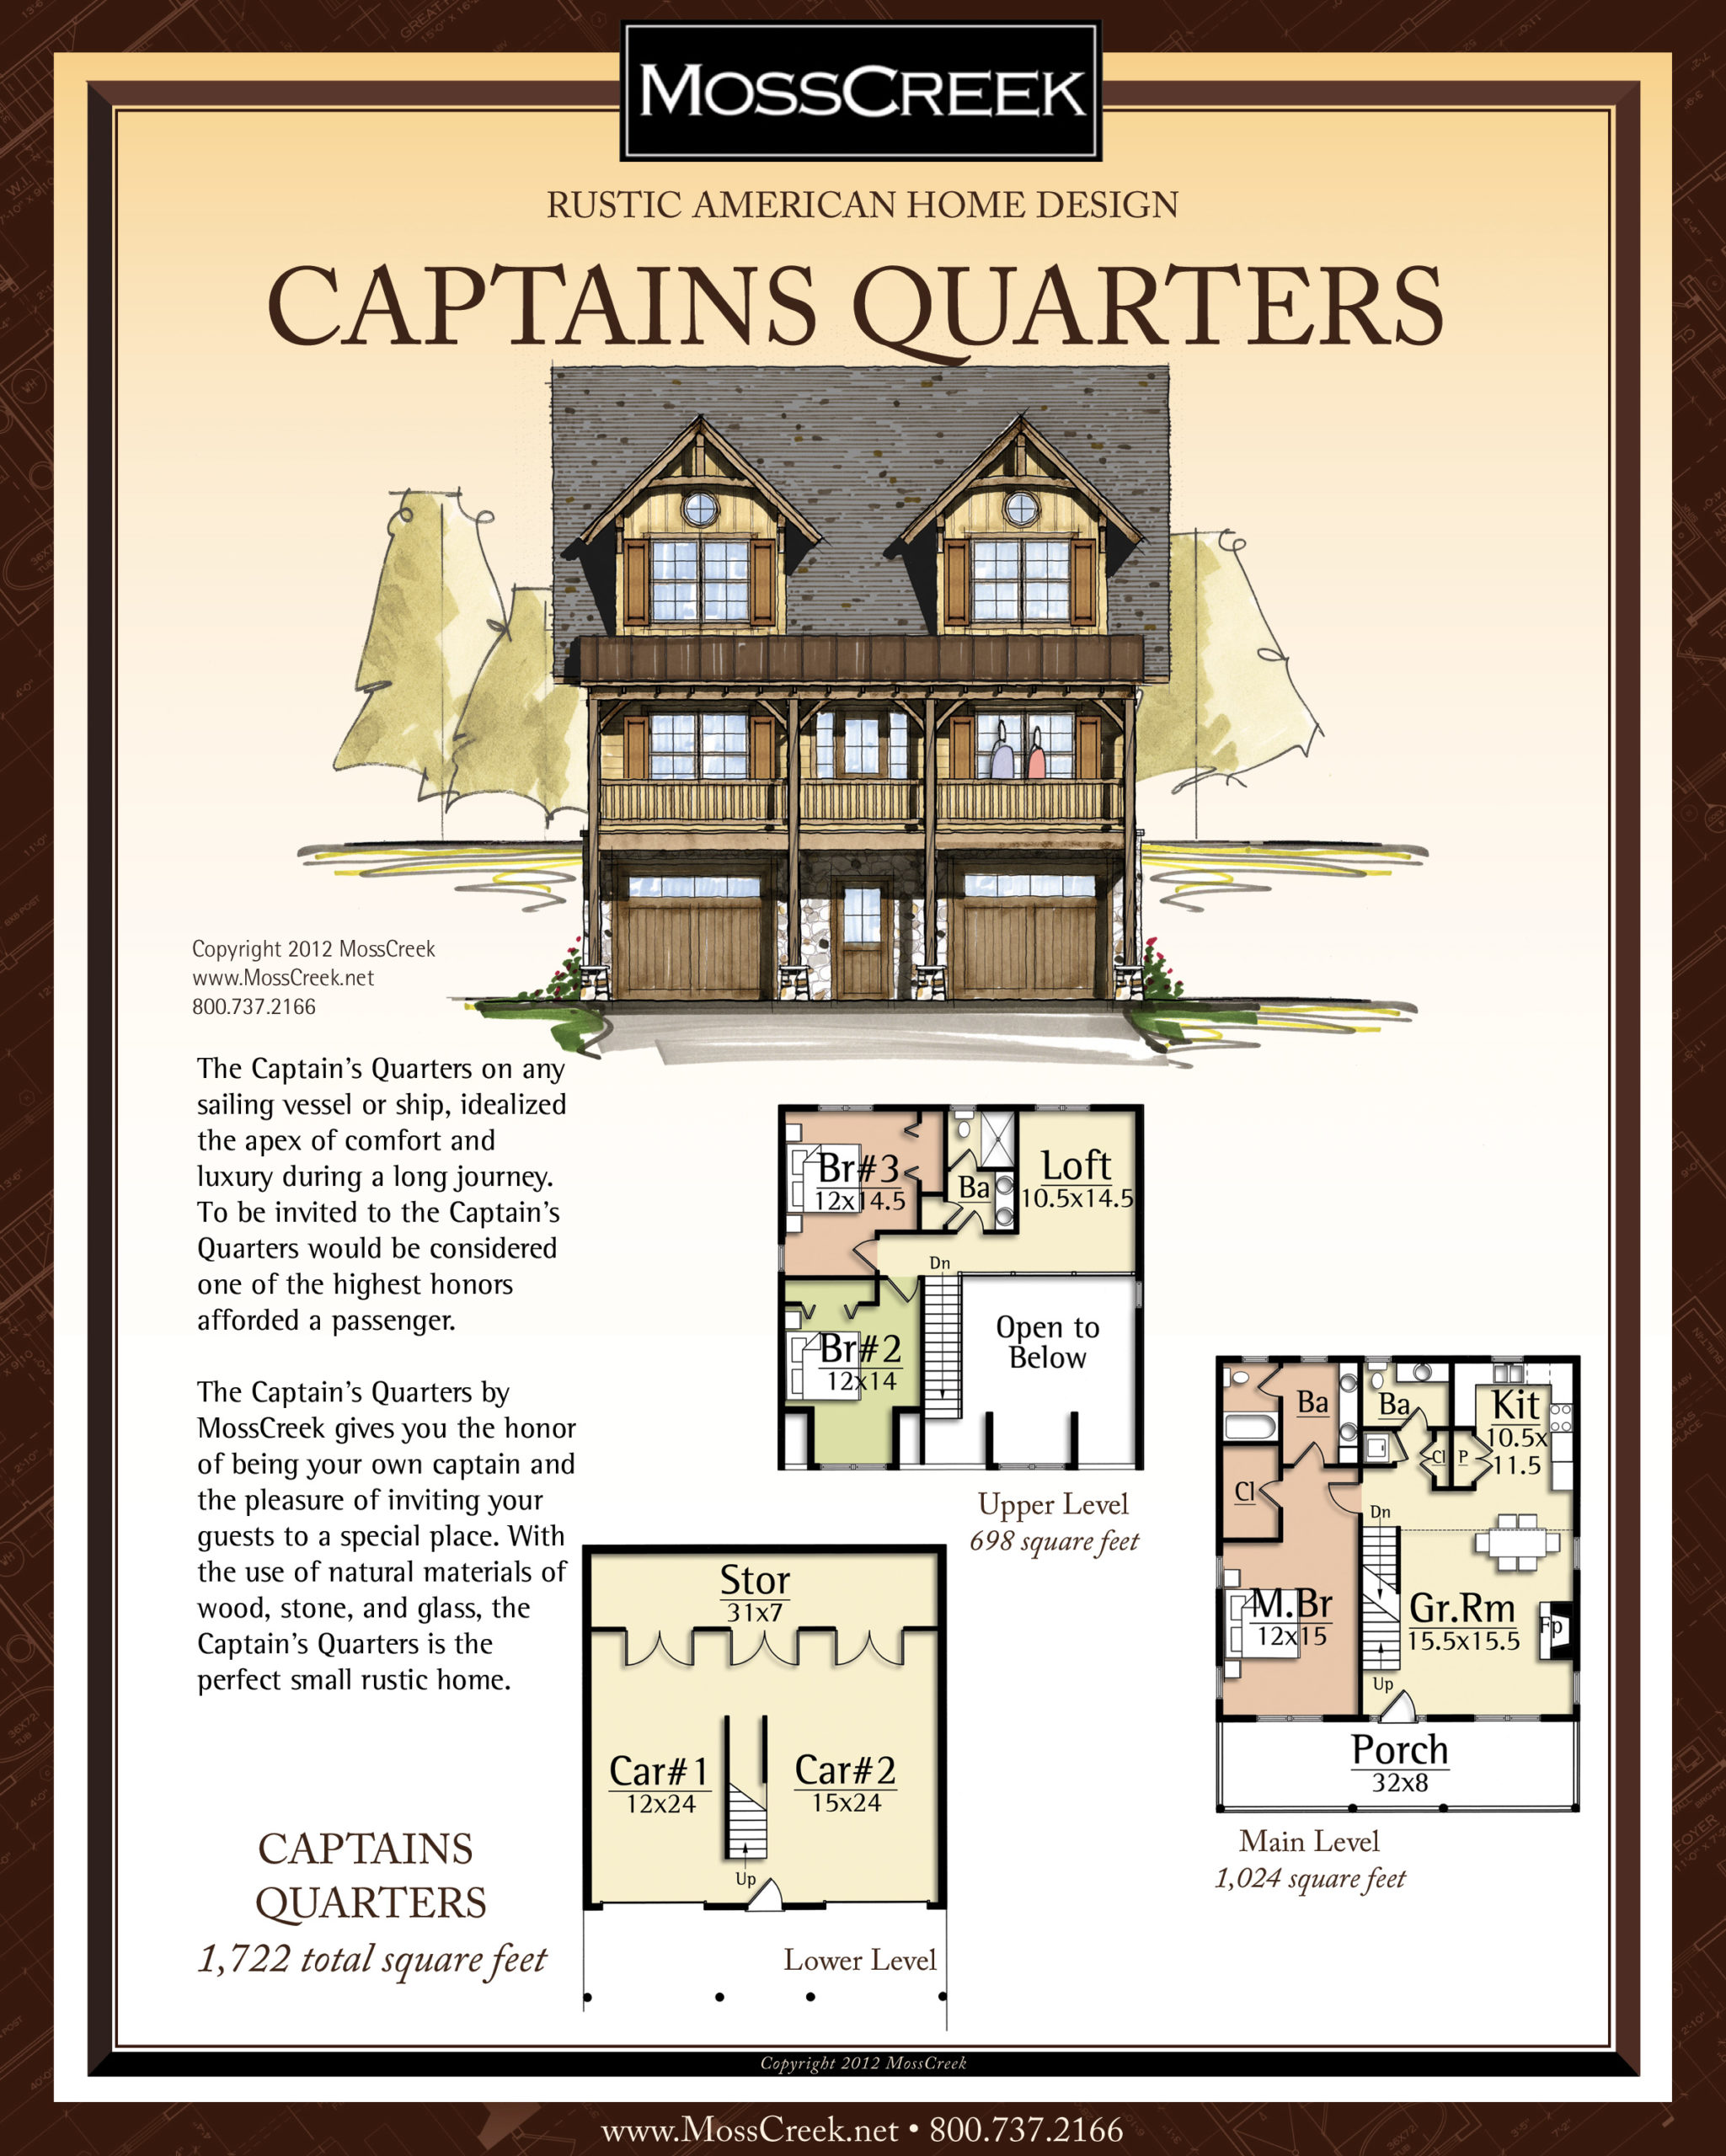 MossCreek Captains Quarters floor plan